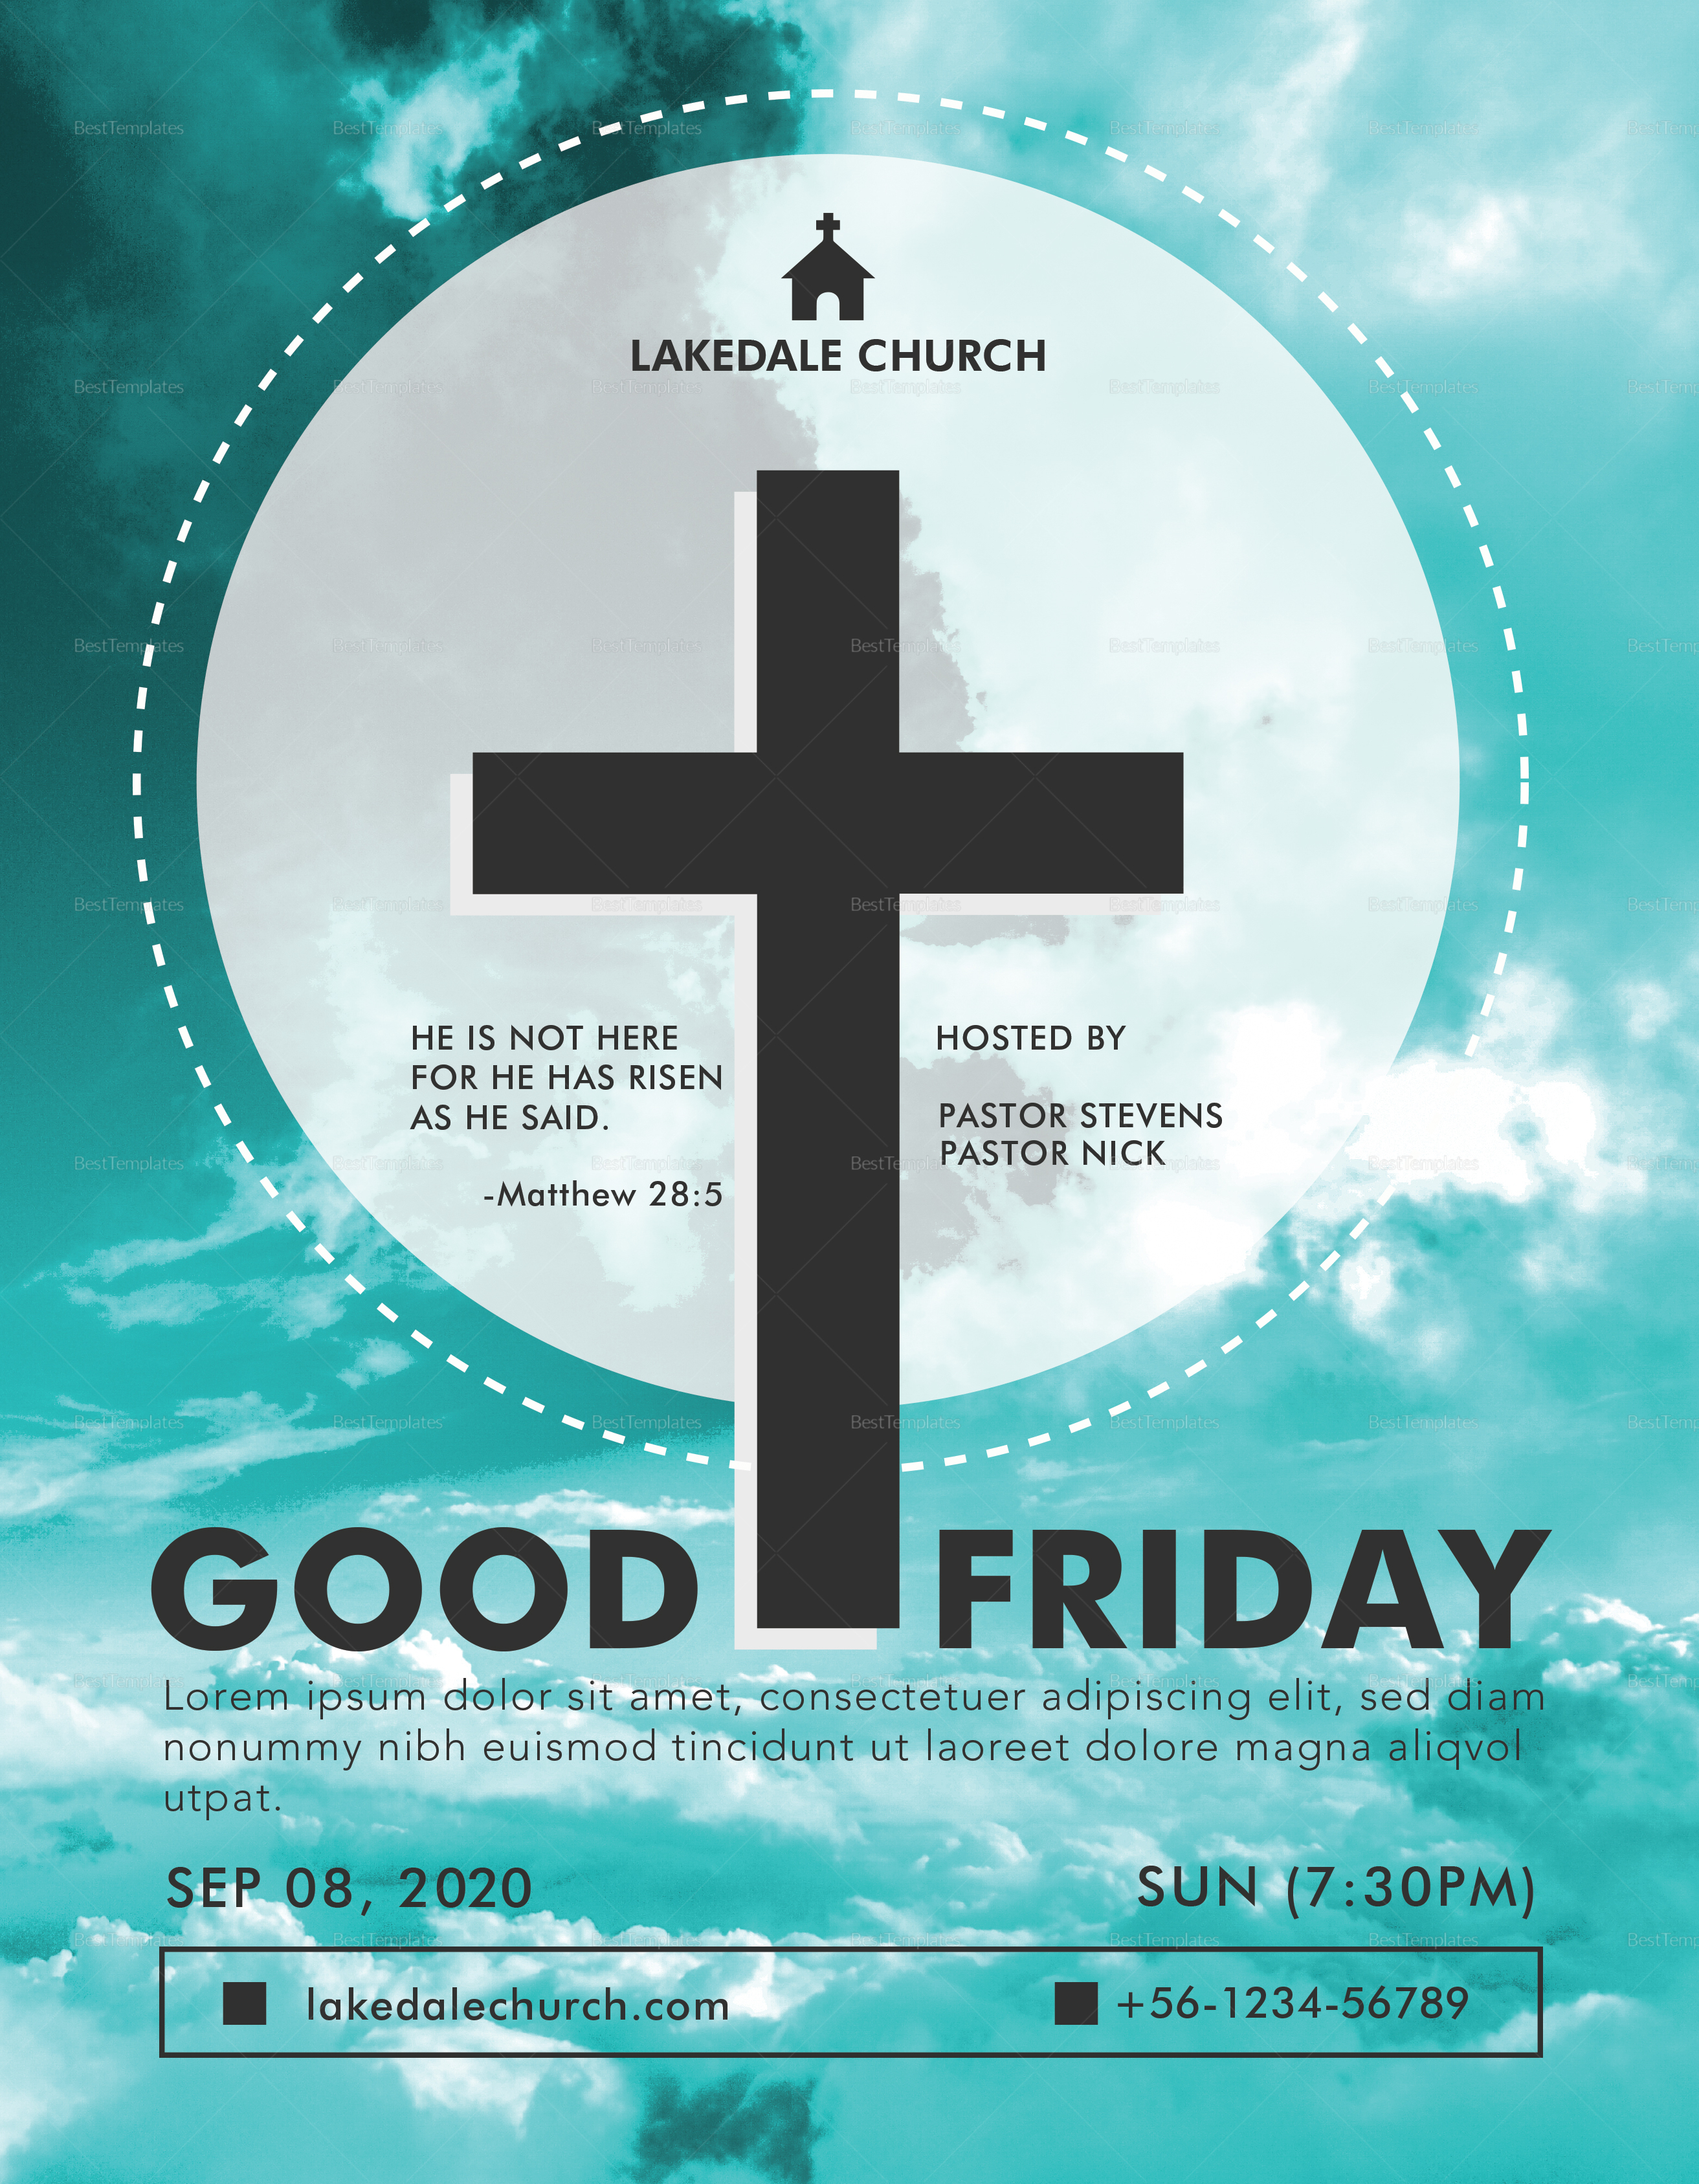 good friday flyer design template in psd  word  publisher  illustrator  indesign